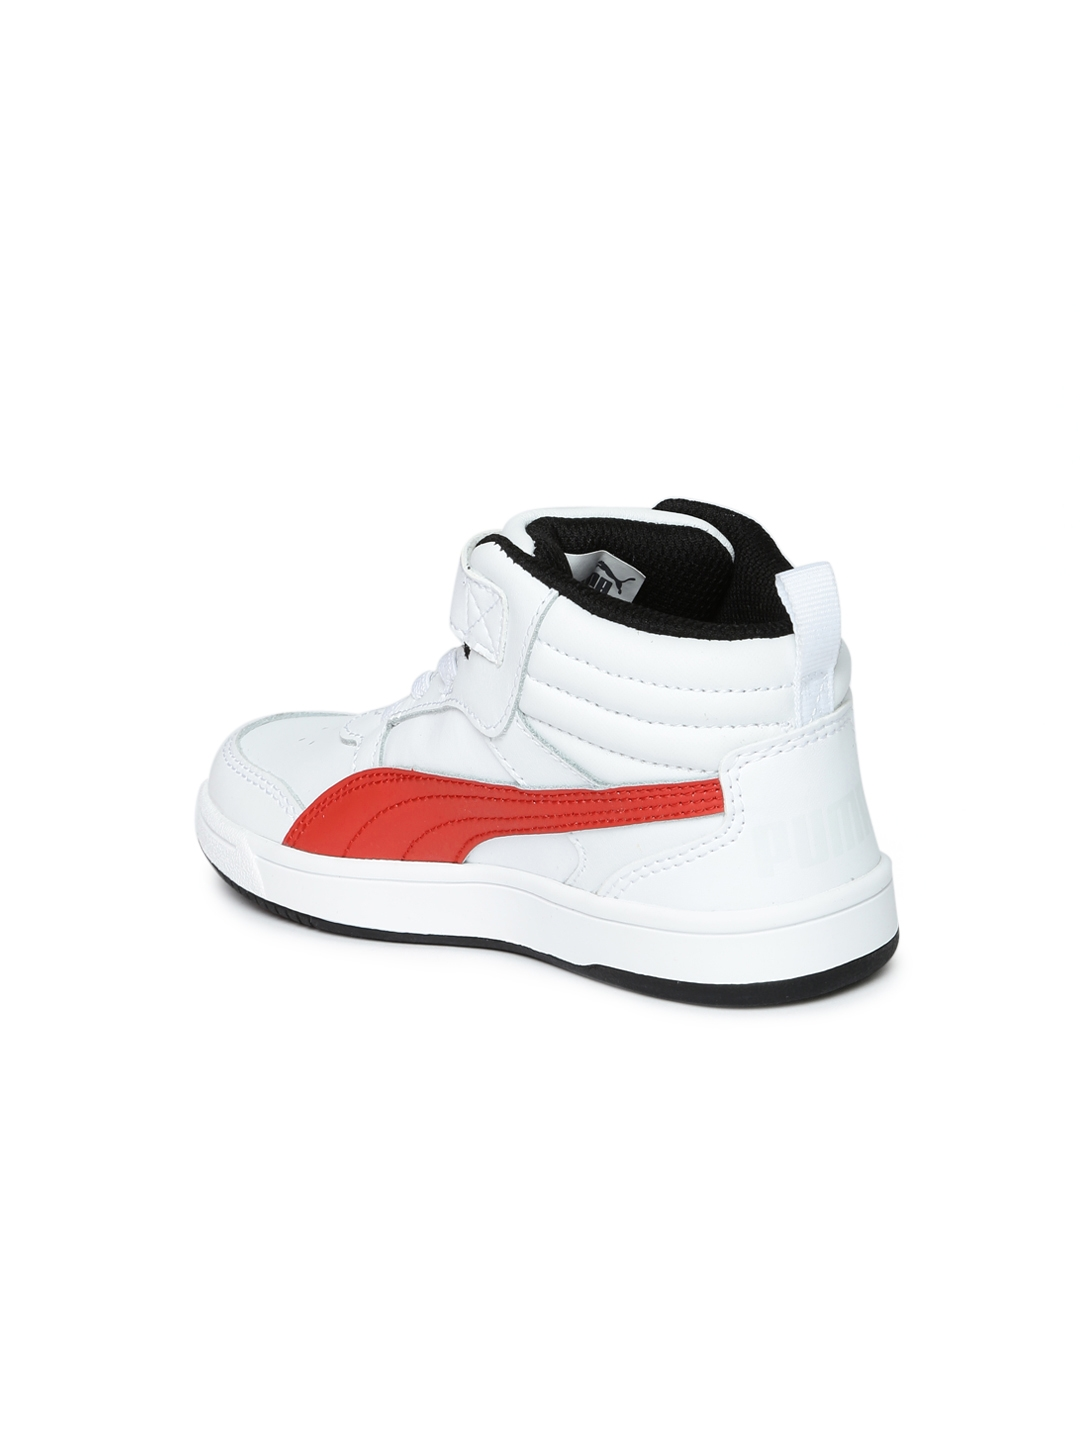 fc5c9020dc7e Puma Boys White   Red Rebound Street v2 L V PS Mid-Top Colourblocked  Leather Sneakers